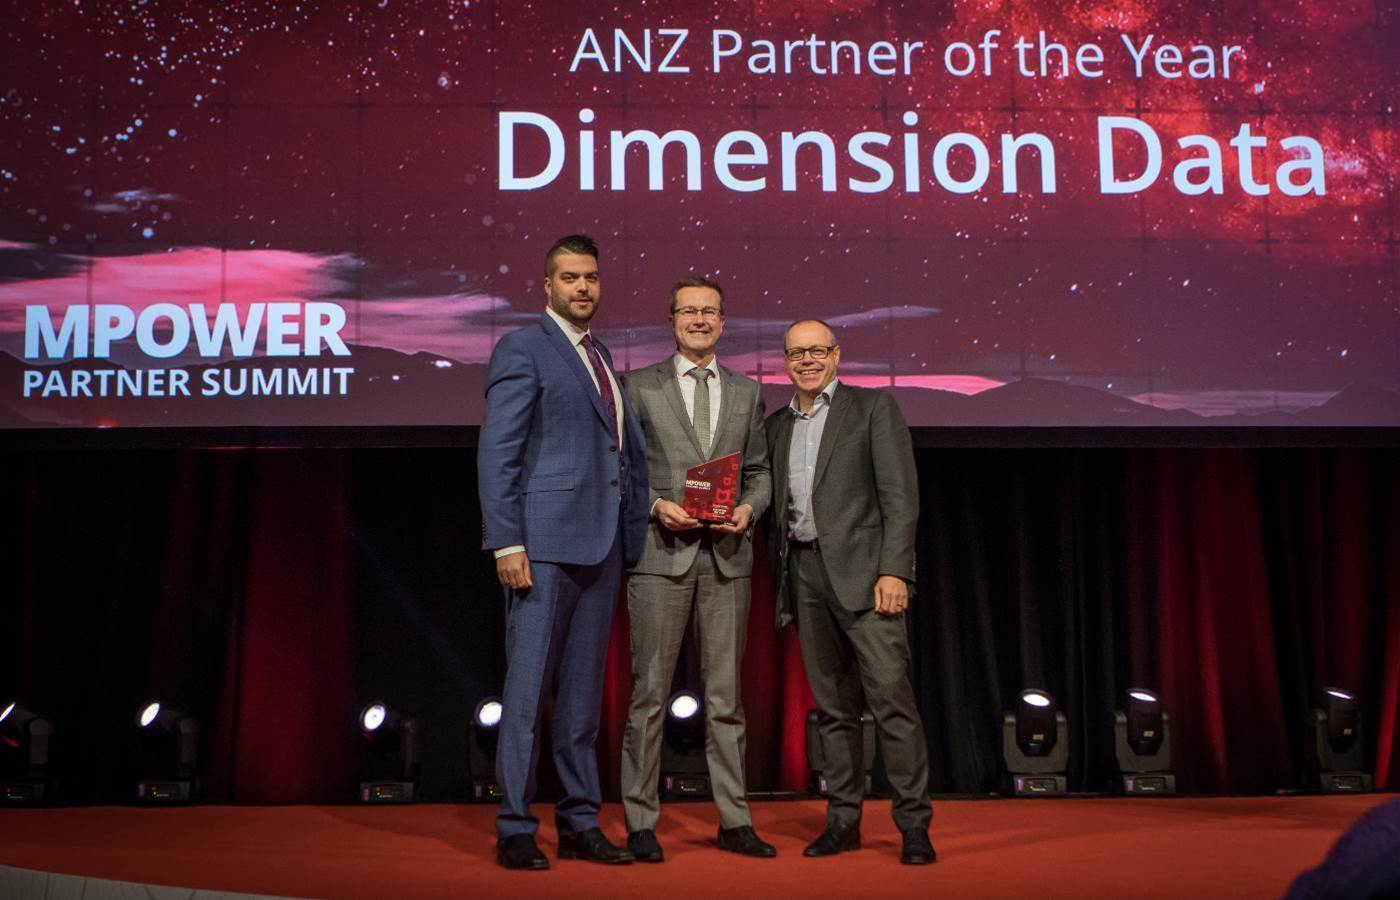 McAfee names top ANZ partners and disties